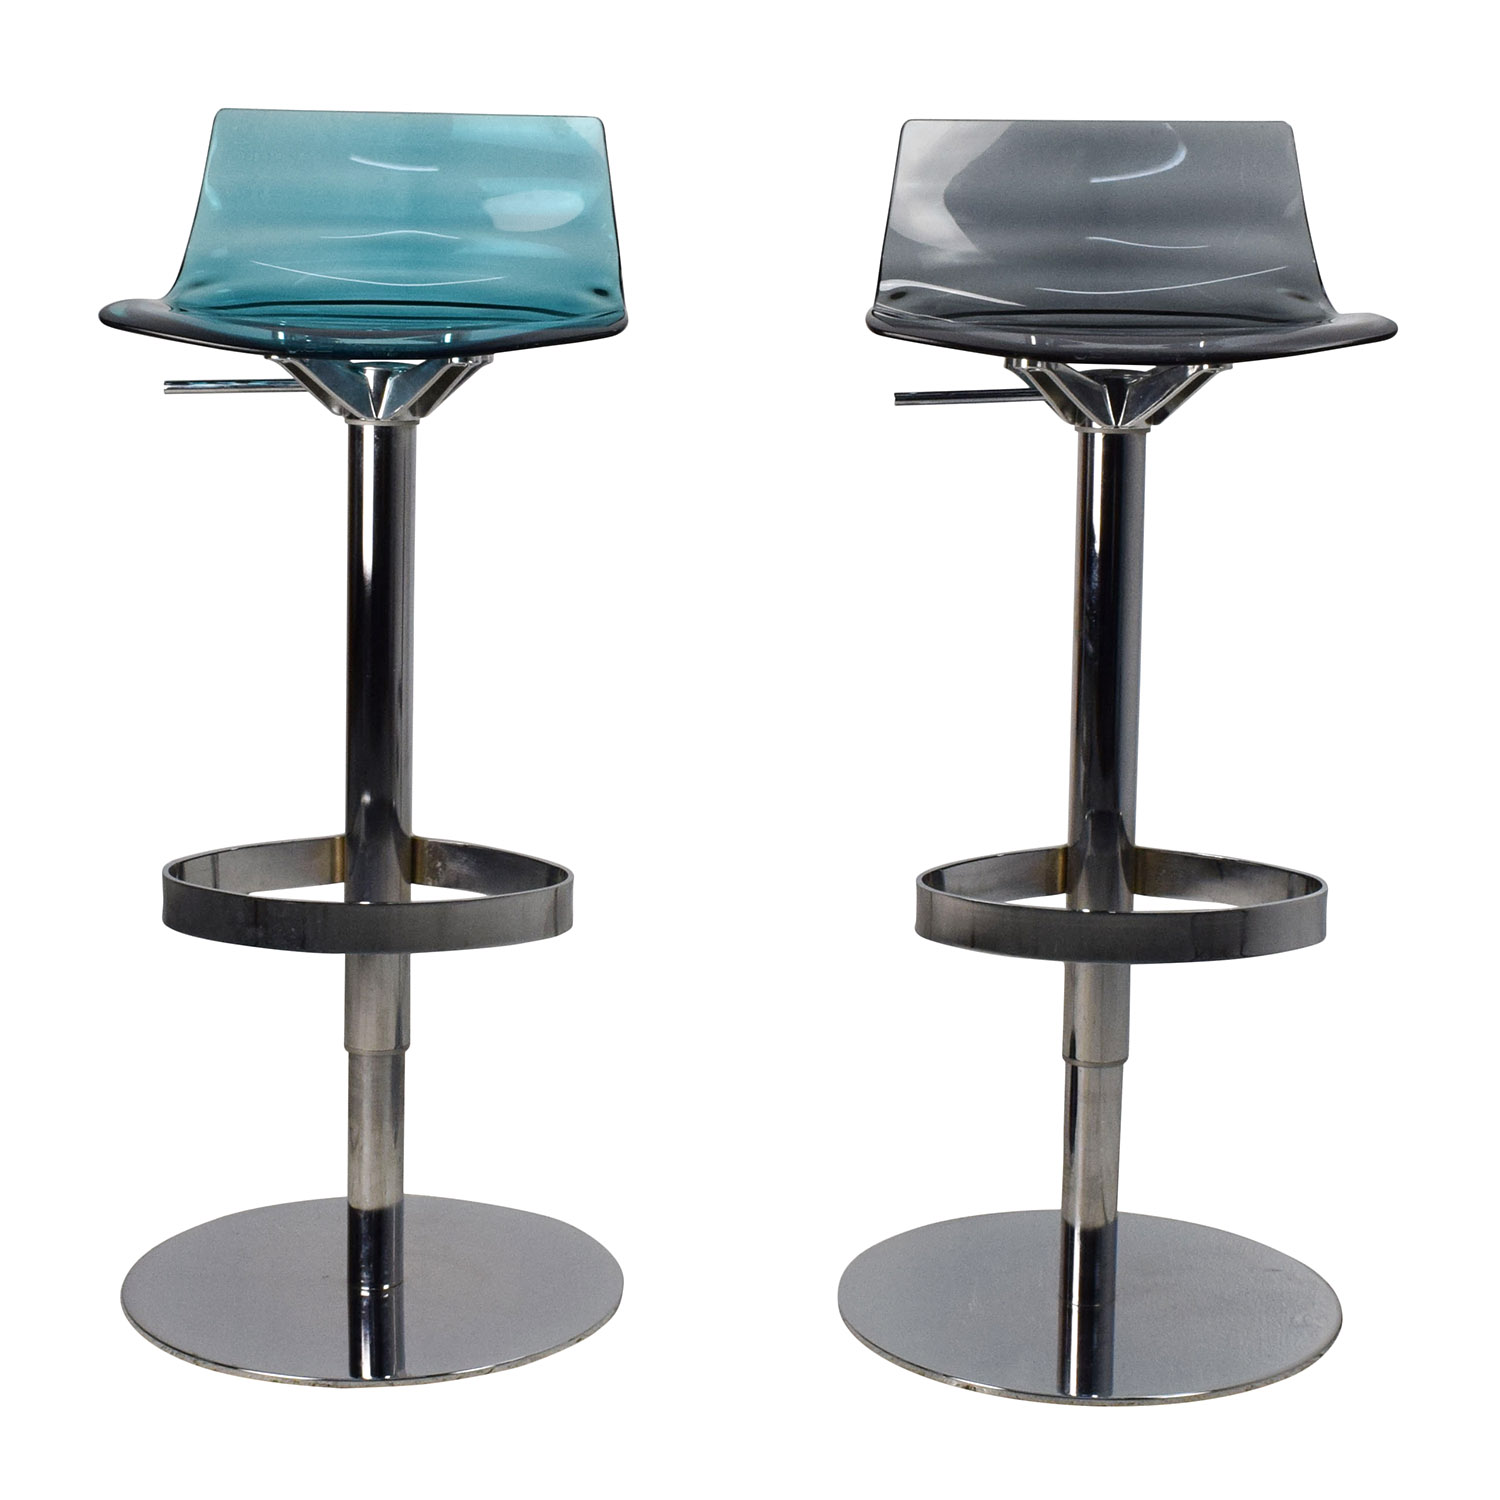 Calligaris Calligaris LEau Adjustable Swivel Bar Stool Pair Chairs